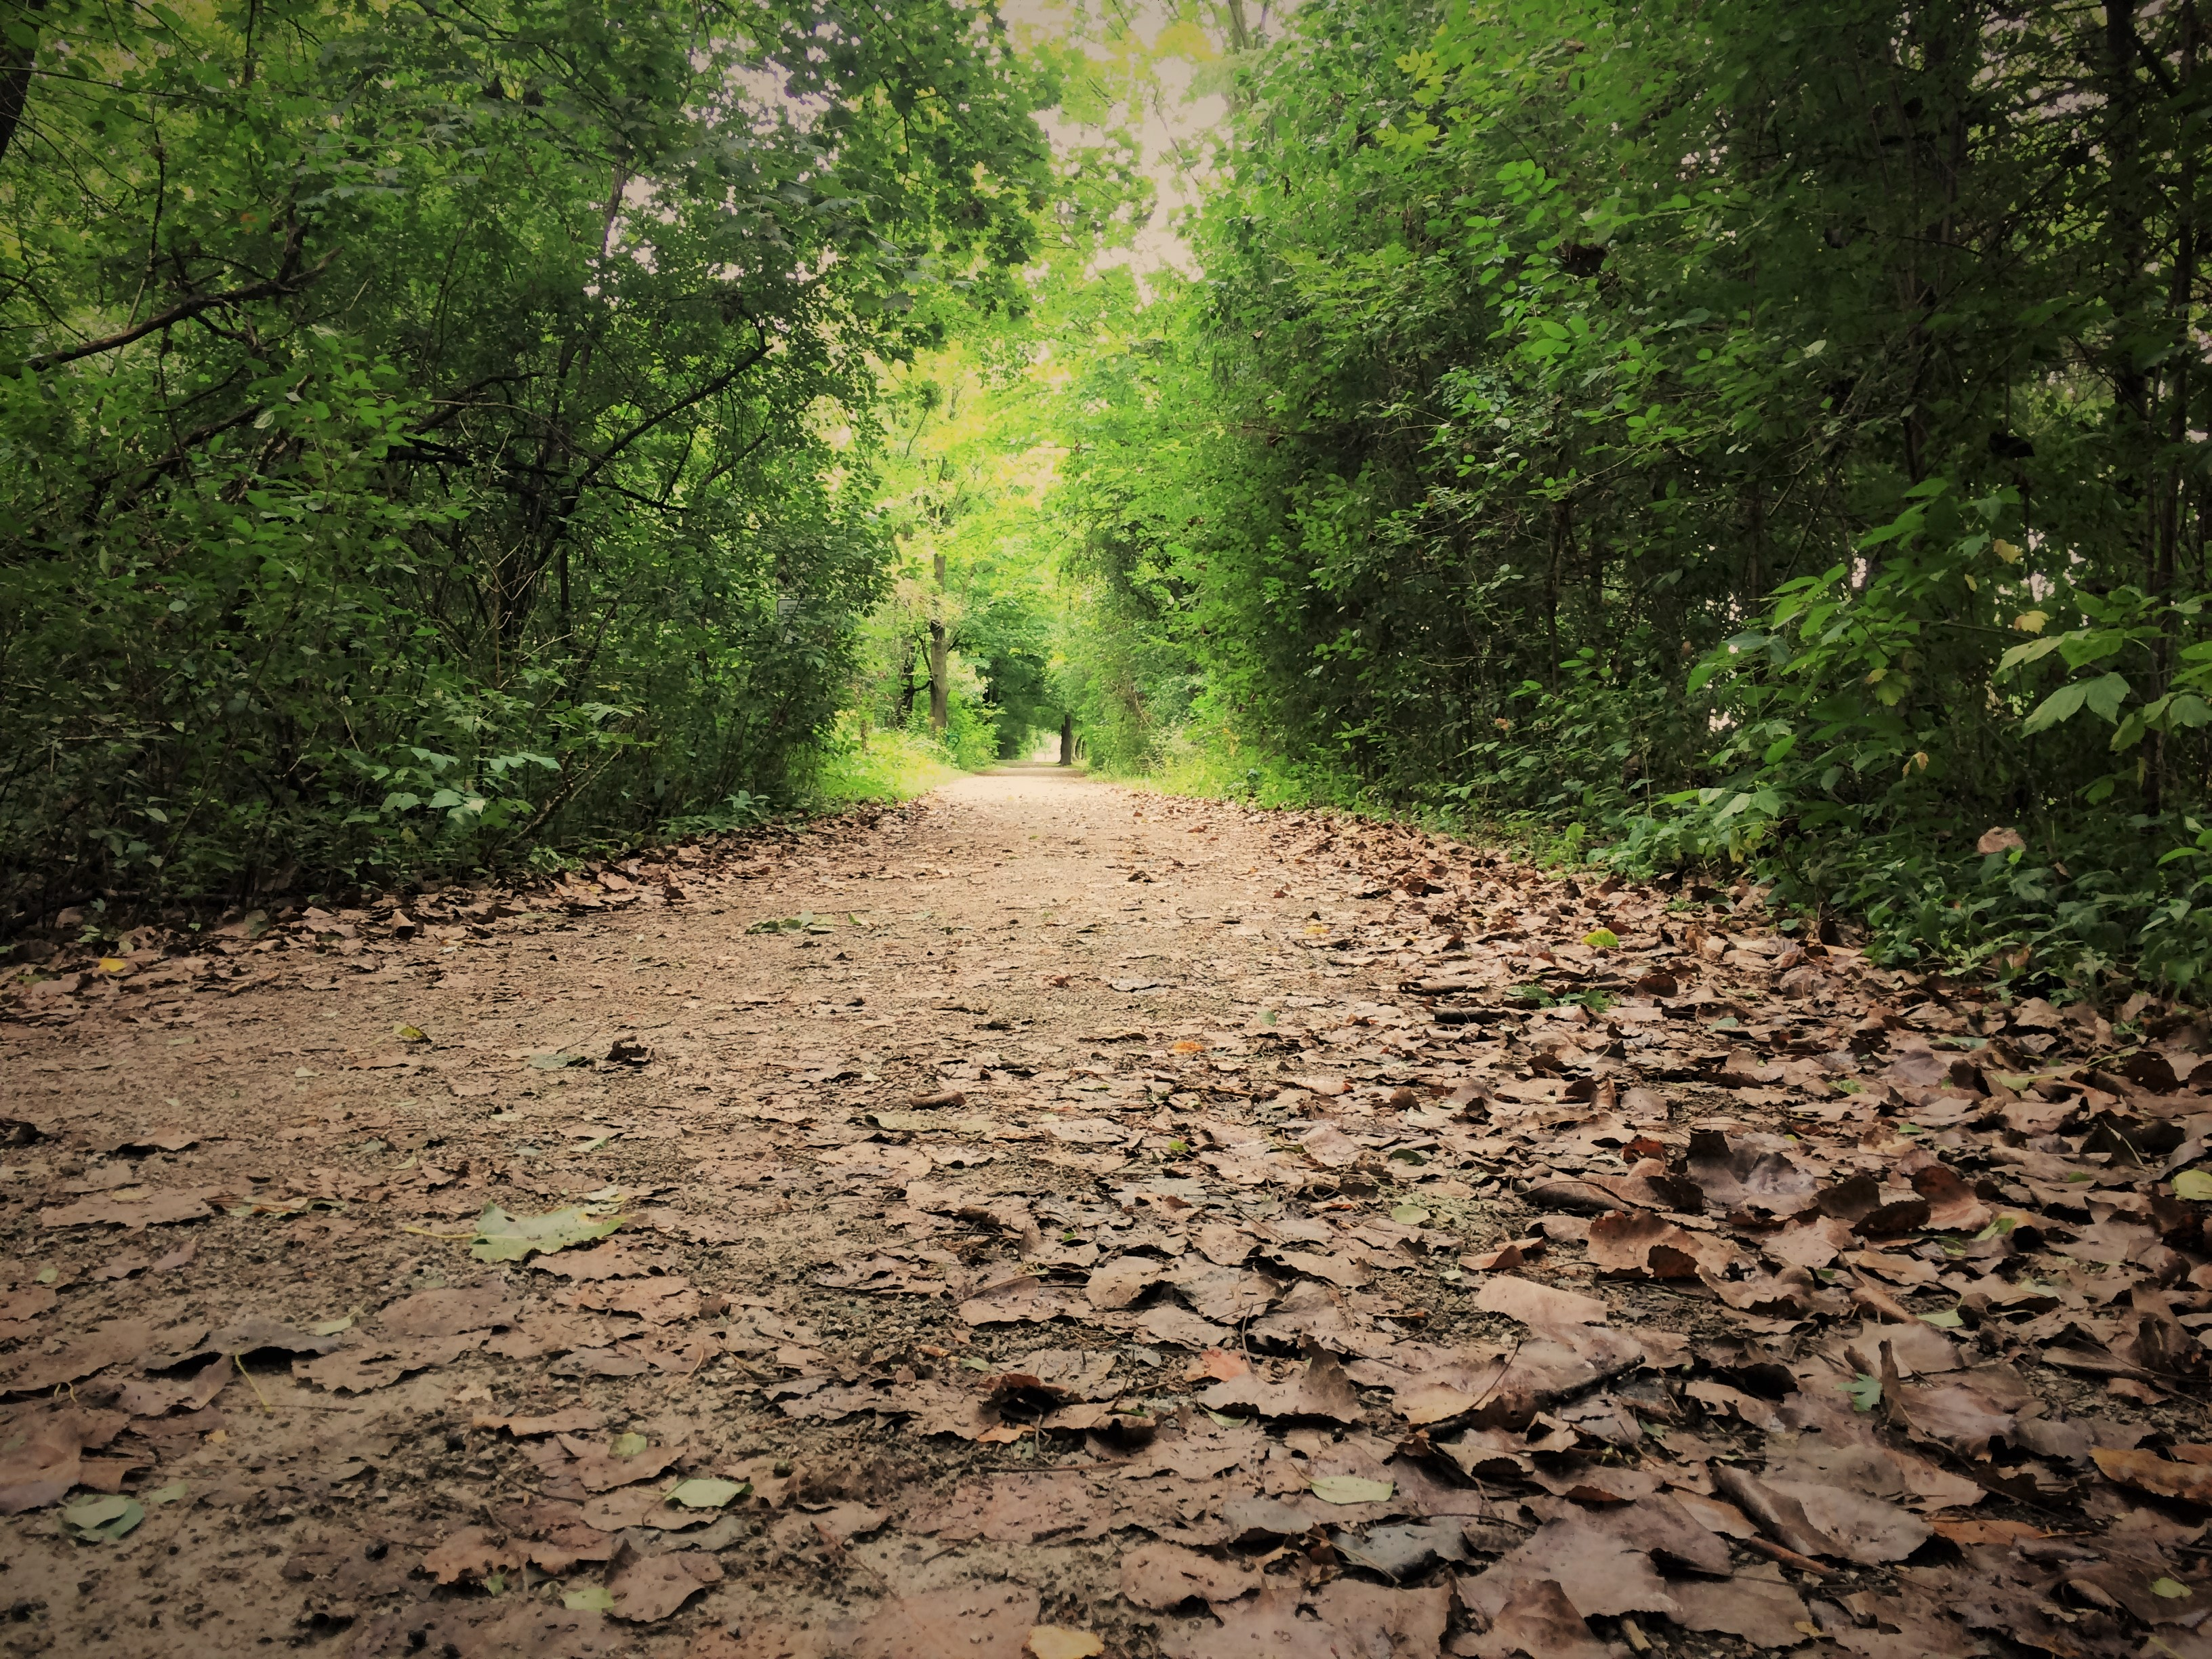 Klaus Wehrenberg Trail with leaves covering the path